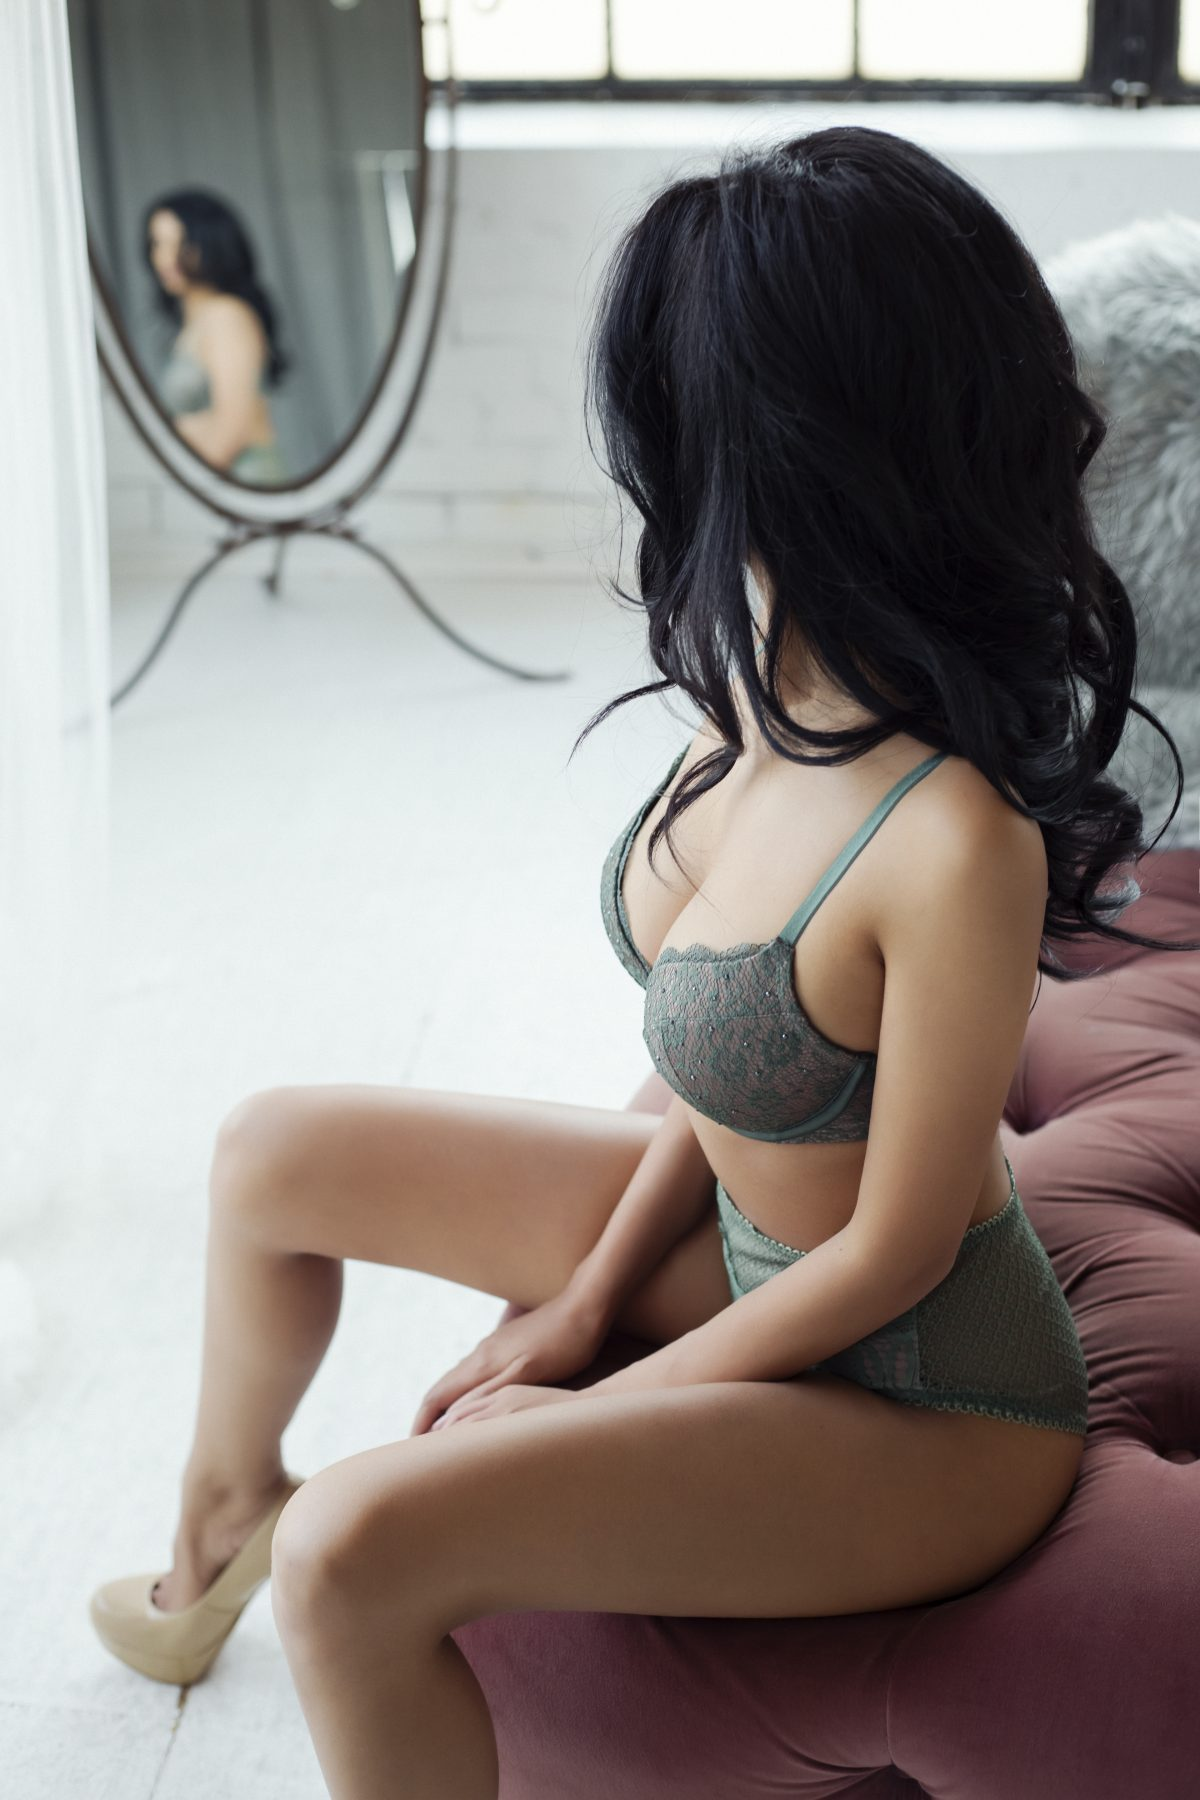 Toronto escorts companion upscale Jasmine Interests Duo Non-smoking Age Young Figure Slender Petite Breasts Natural Brunette Ethnicity Asian Exotic Tattoos Small